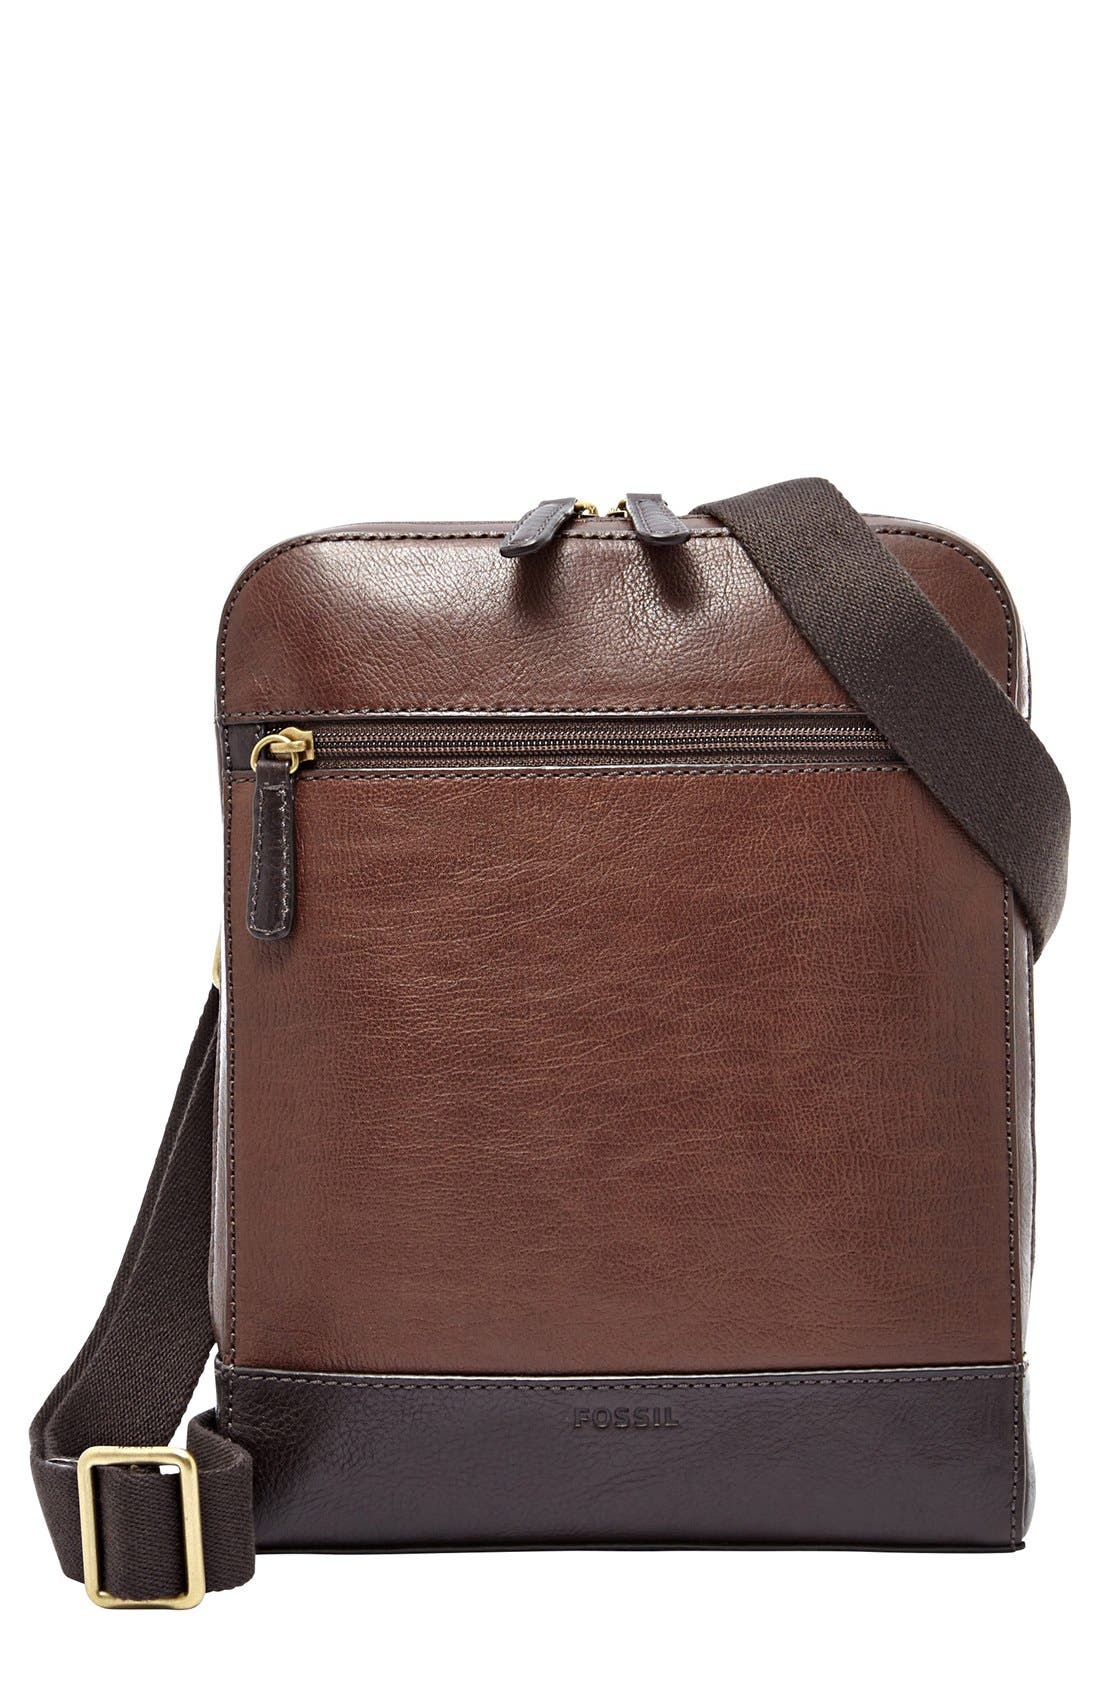 Alternate Image 1 Selected - Fossil 'Rory' Leather Crossbody Bag